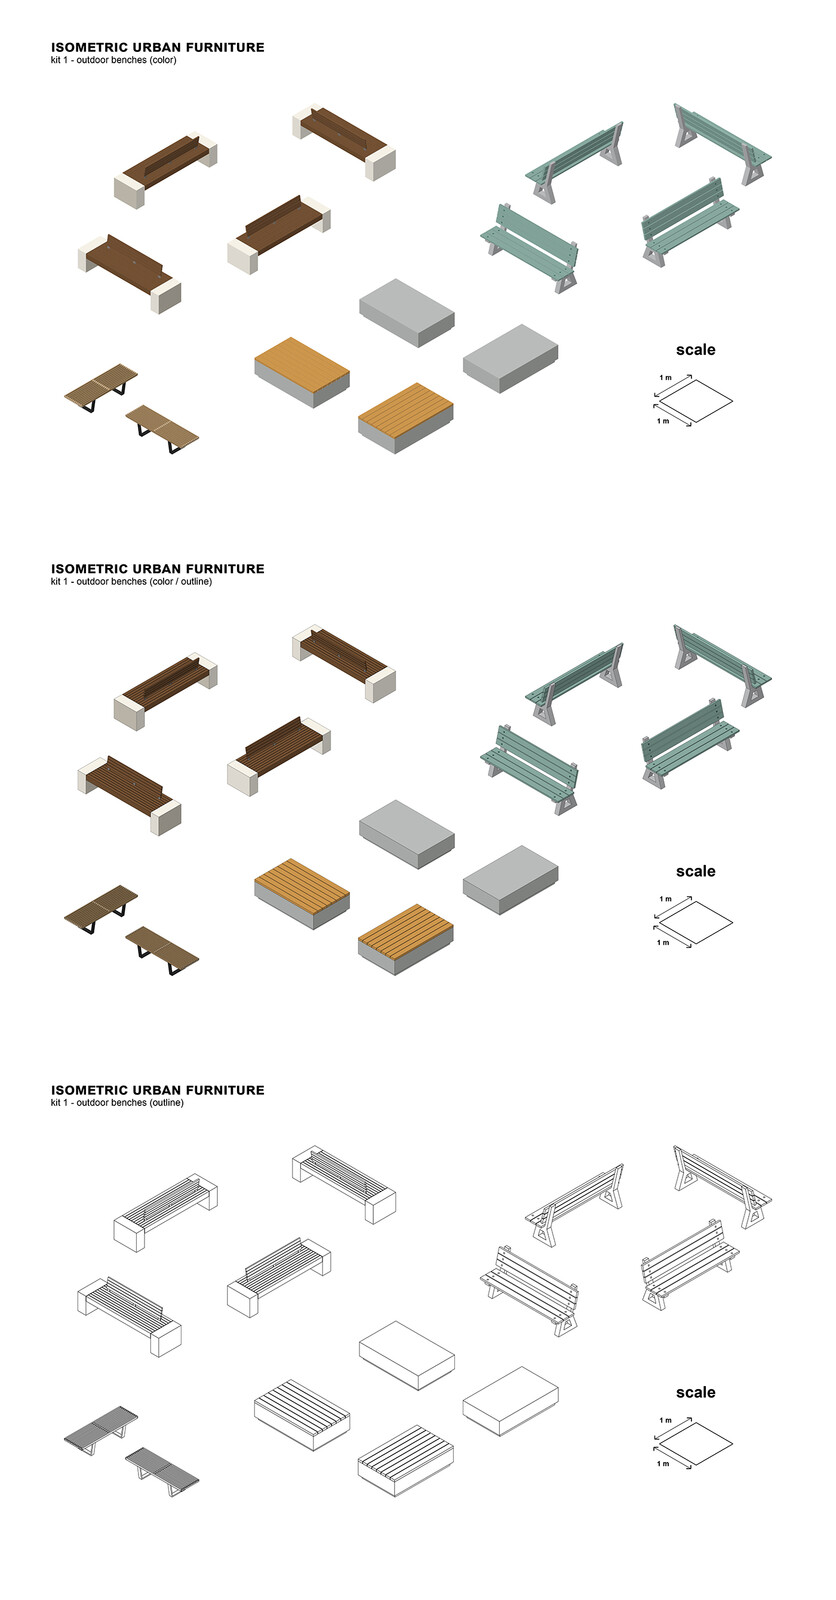 kit 1 - outdoor benches